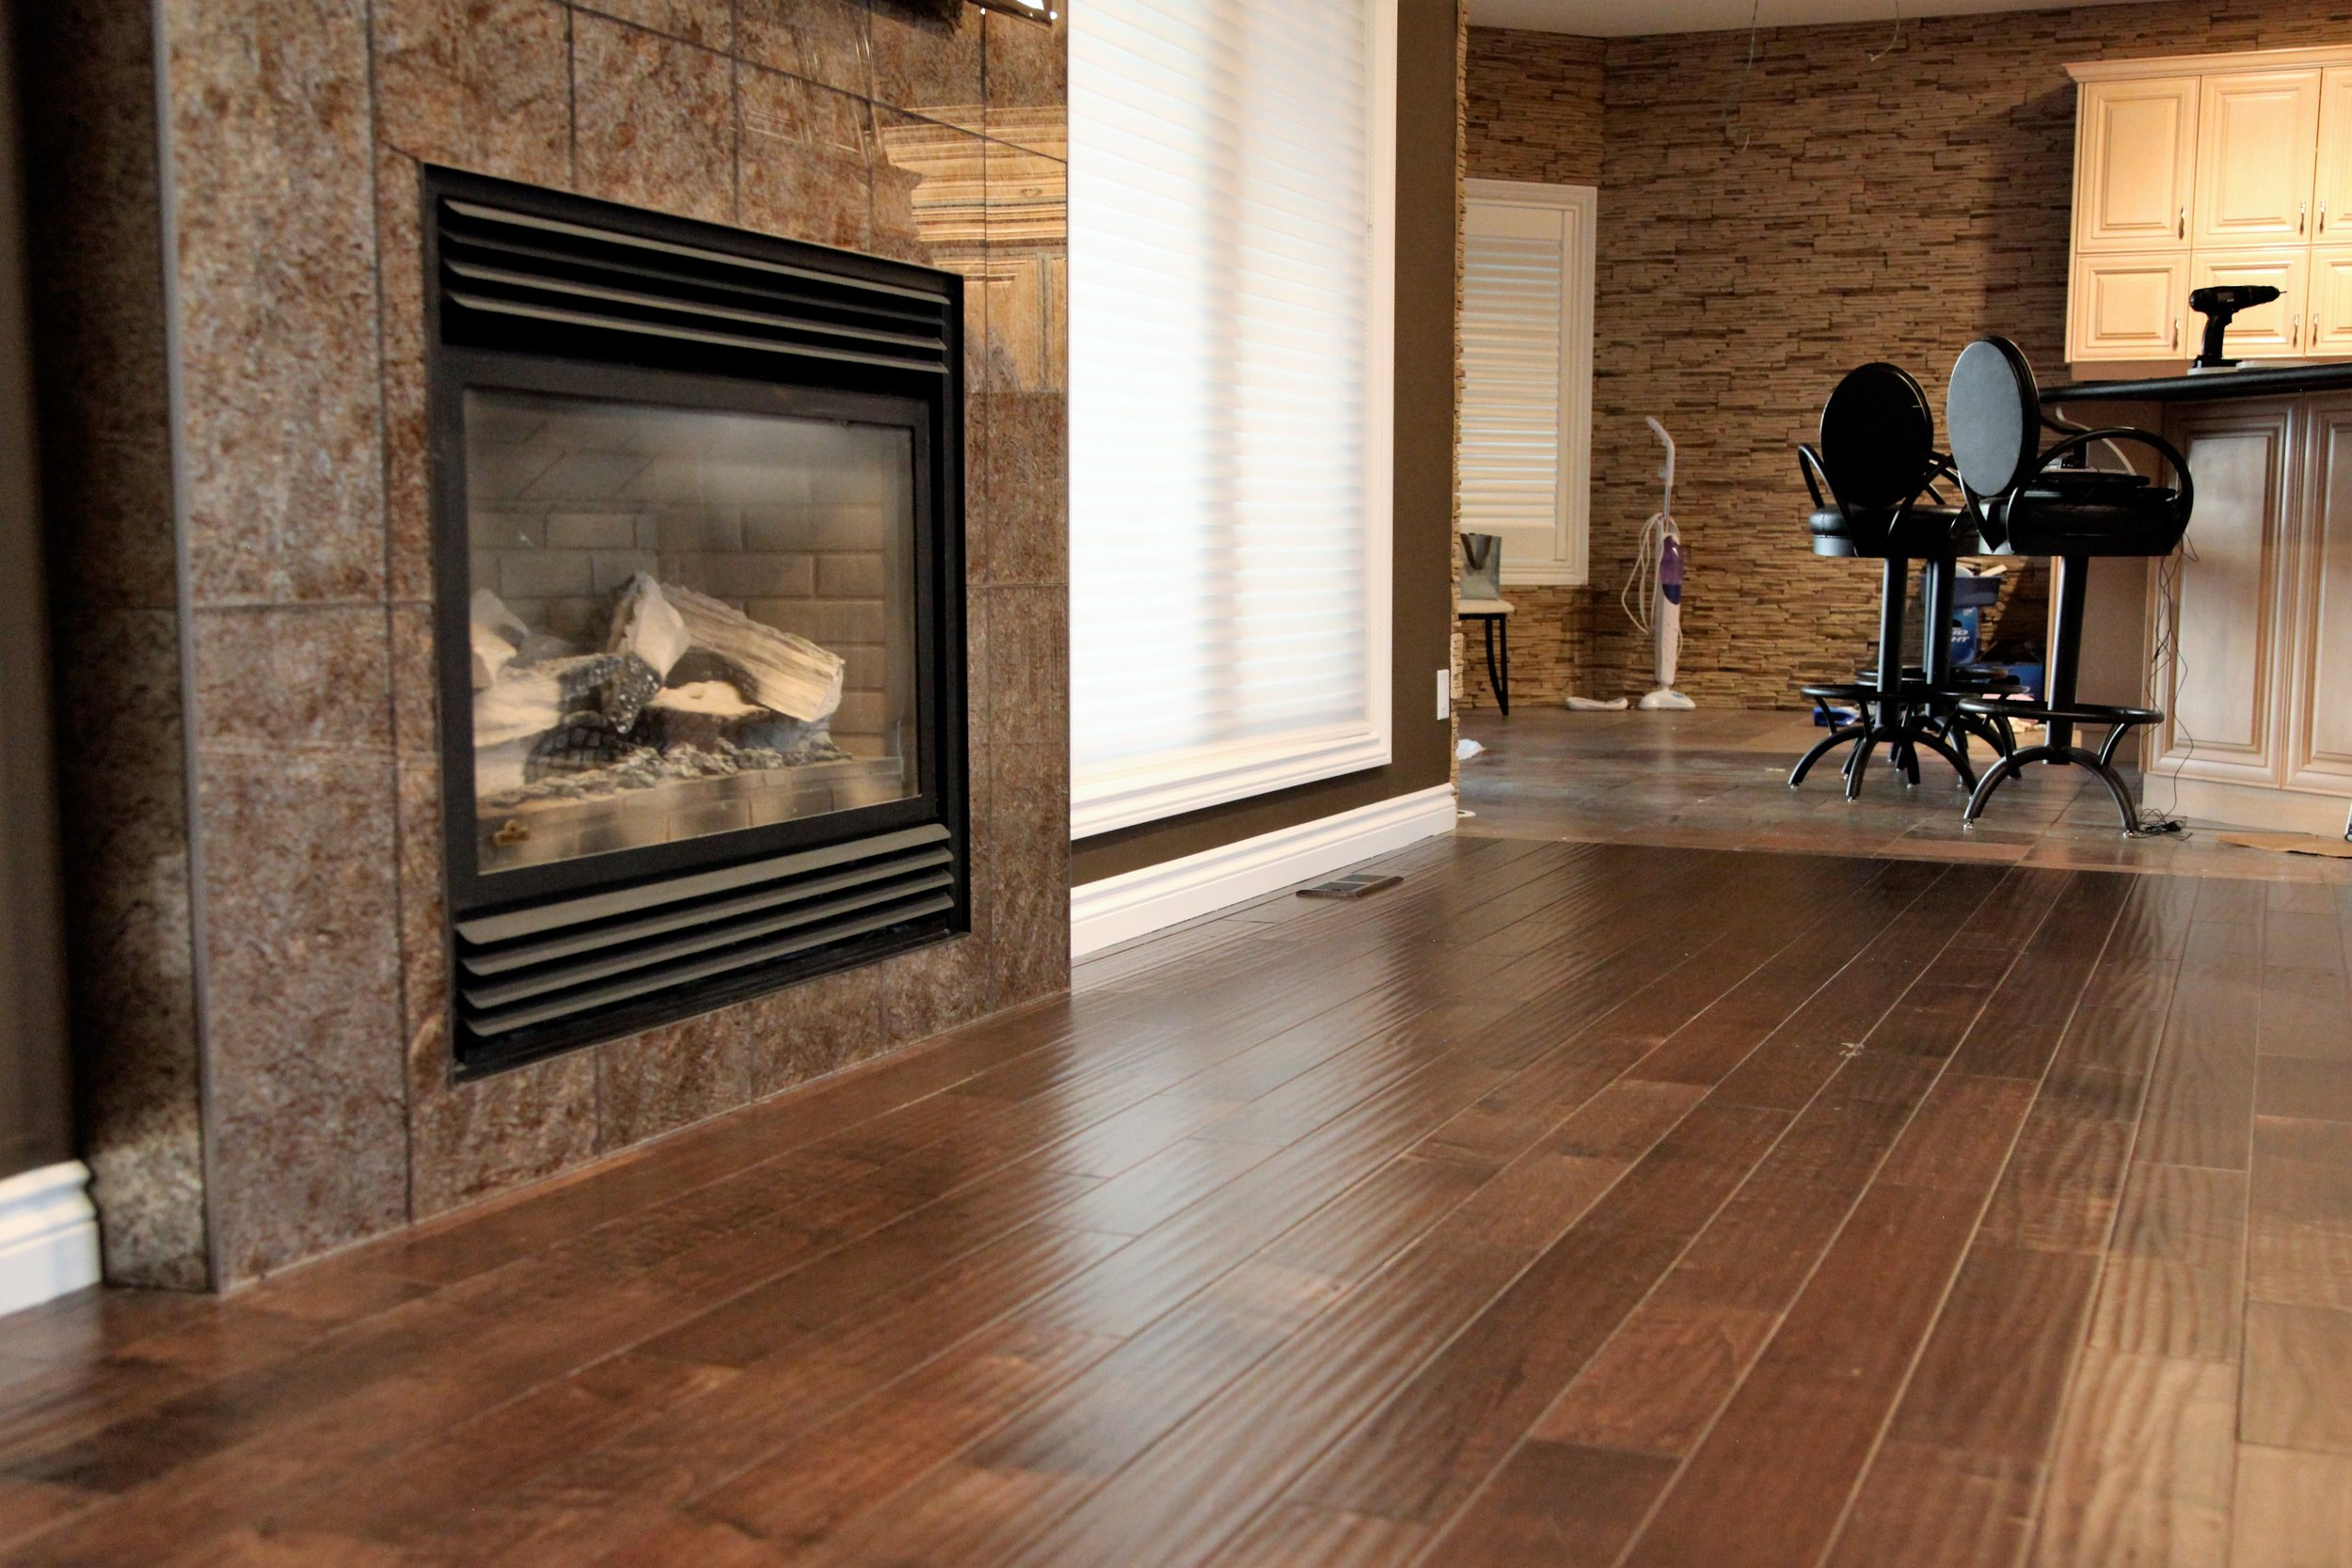 Living area hardwood floor fireplace surrounf.jpg